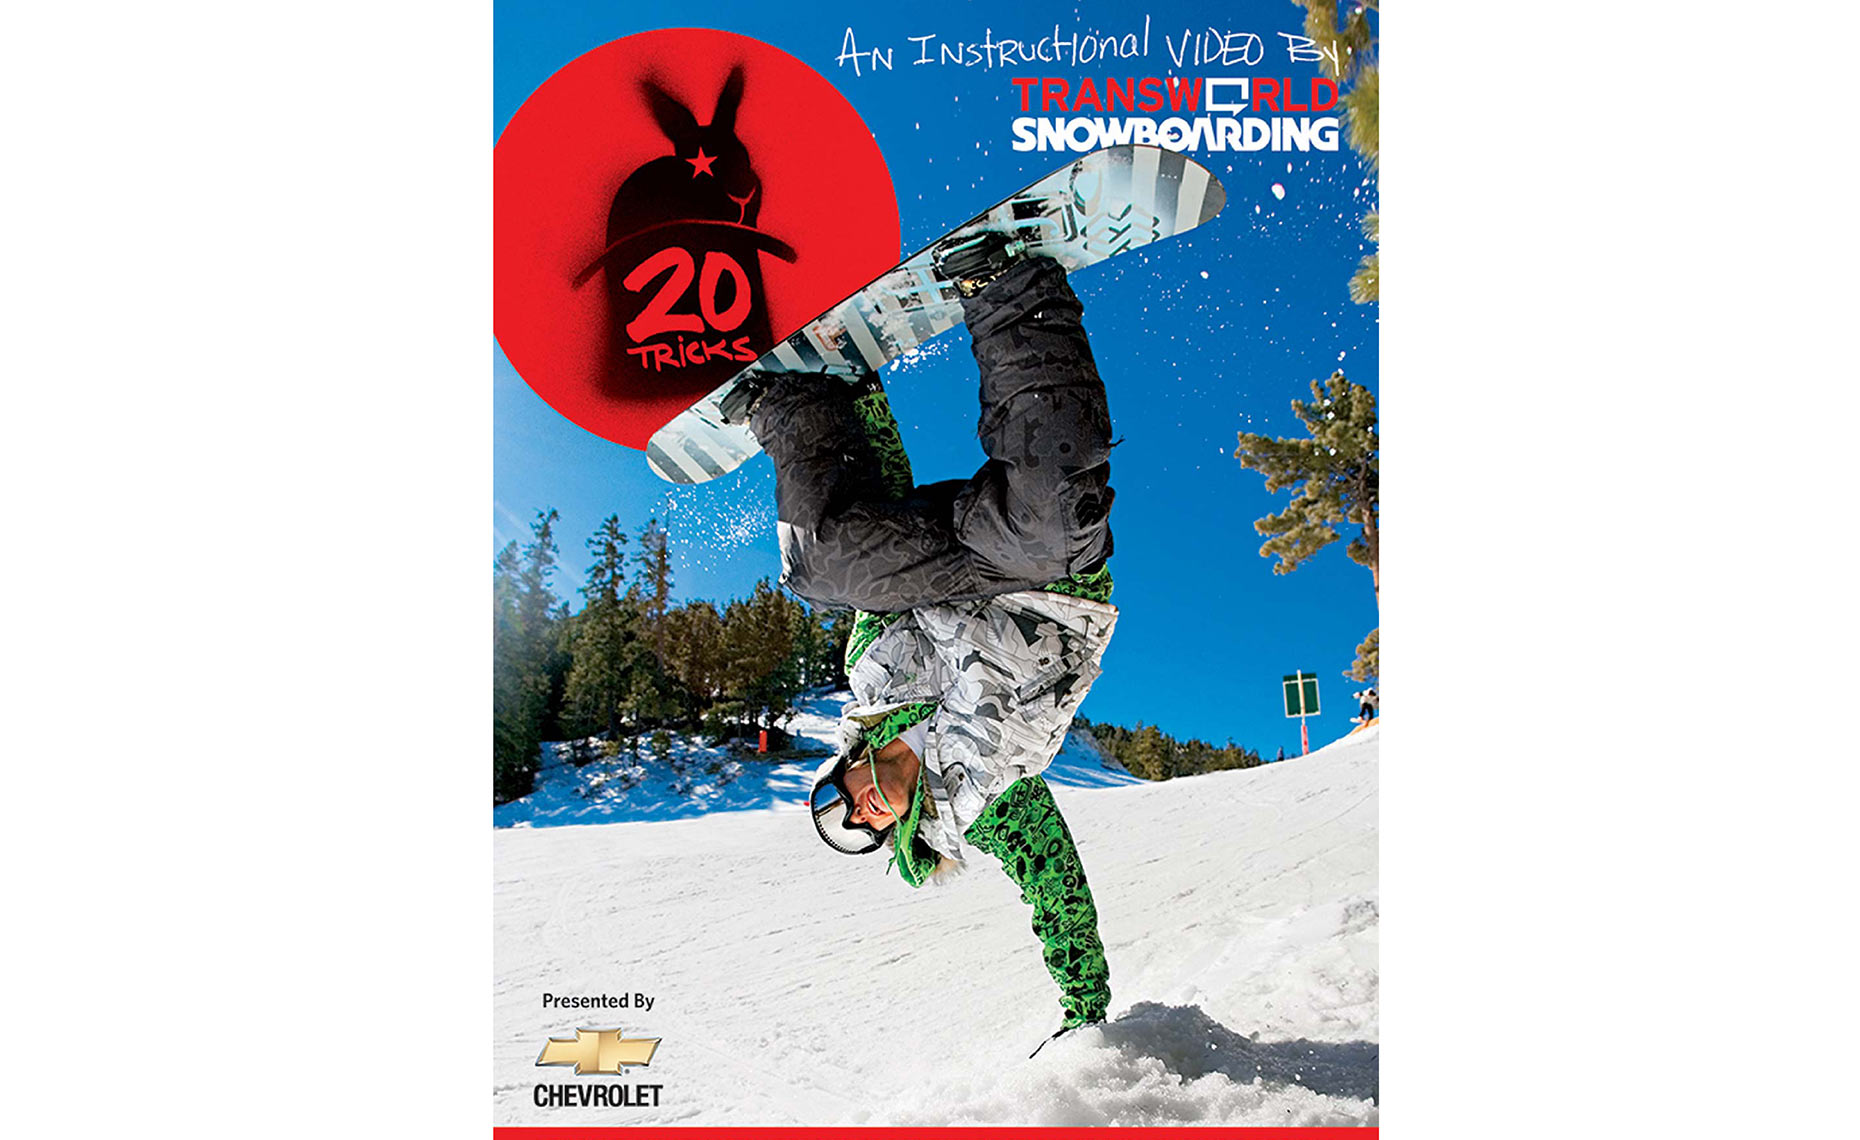 05-JP-Walker-TransWorld-SNOWboarding-Chris-Wellhausen